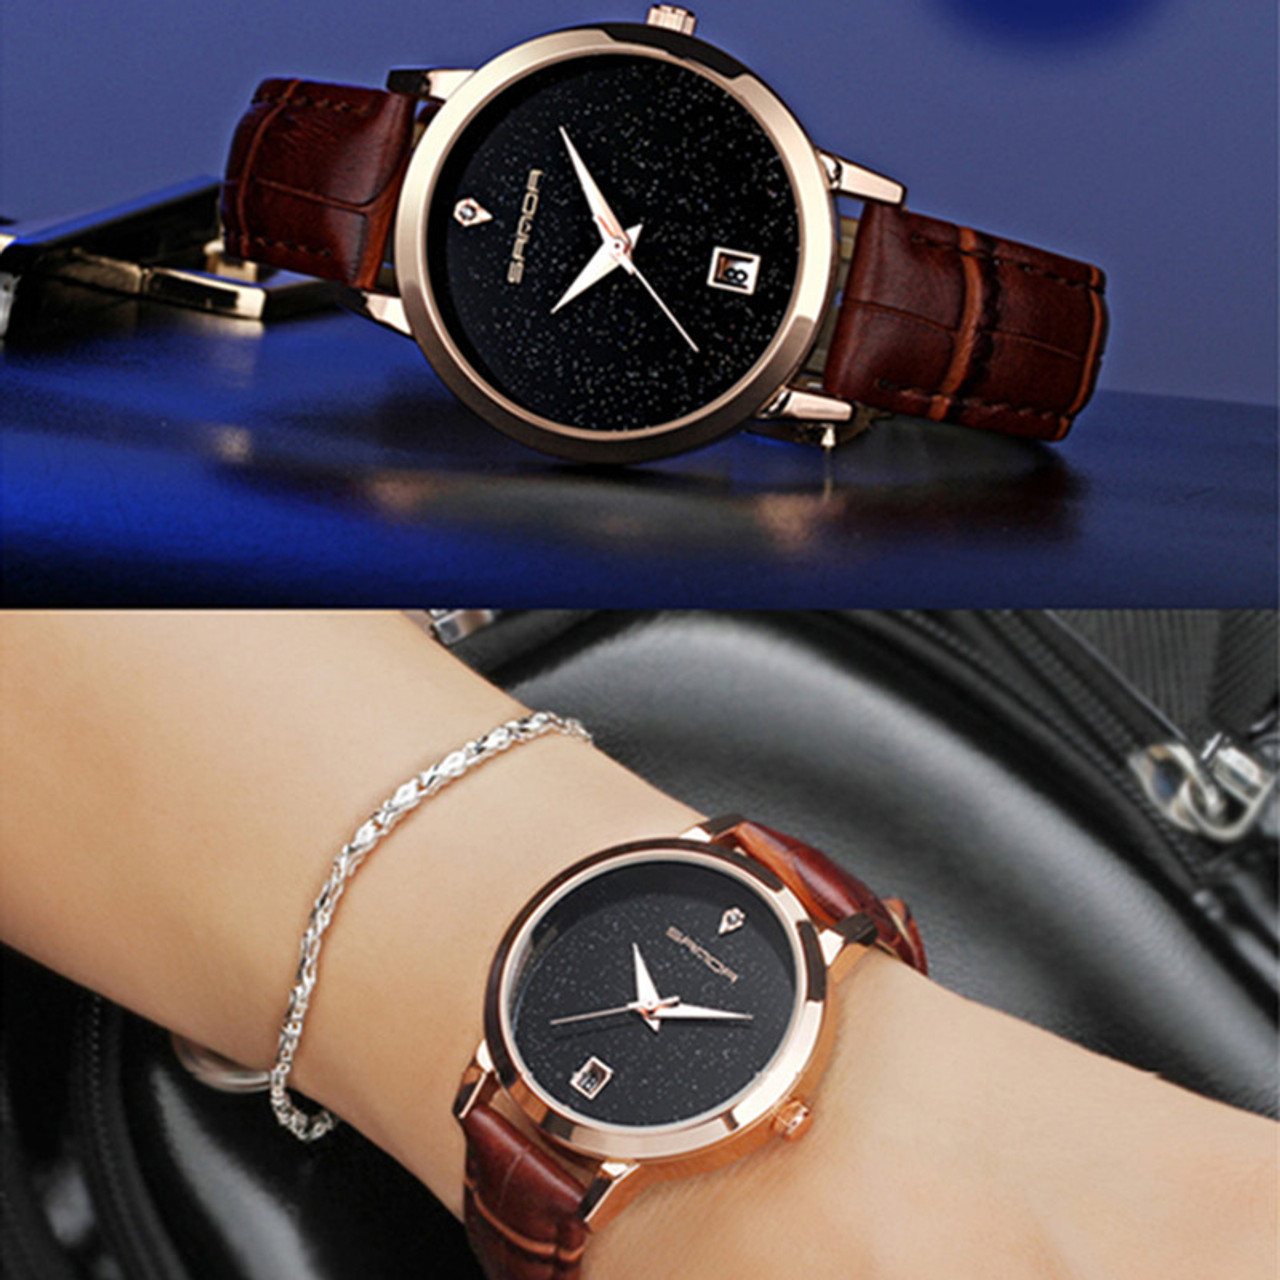 5c709da9fa0 ... SANDA brand quartz watch ladies waterproof leather watch watch fashion  romantic woman watch Relogio Faminino ...